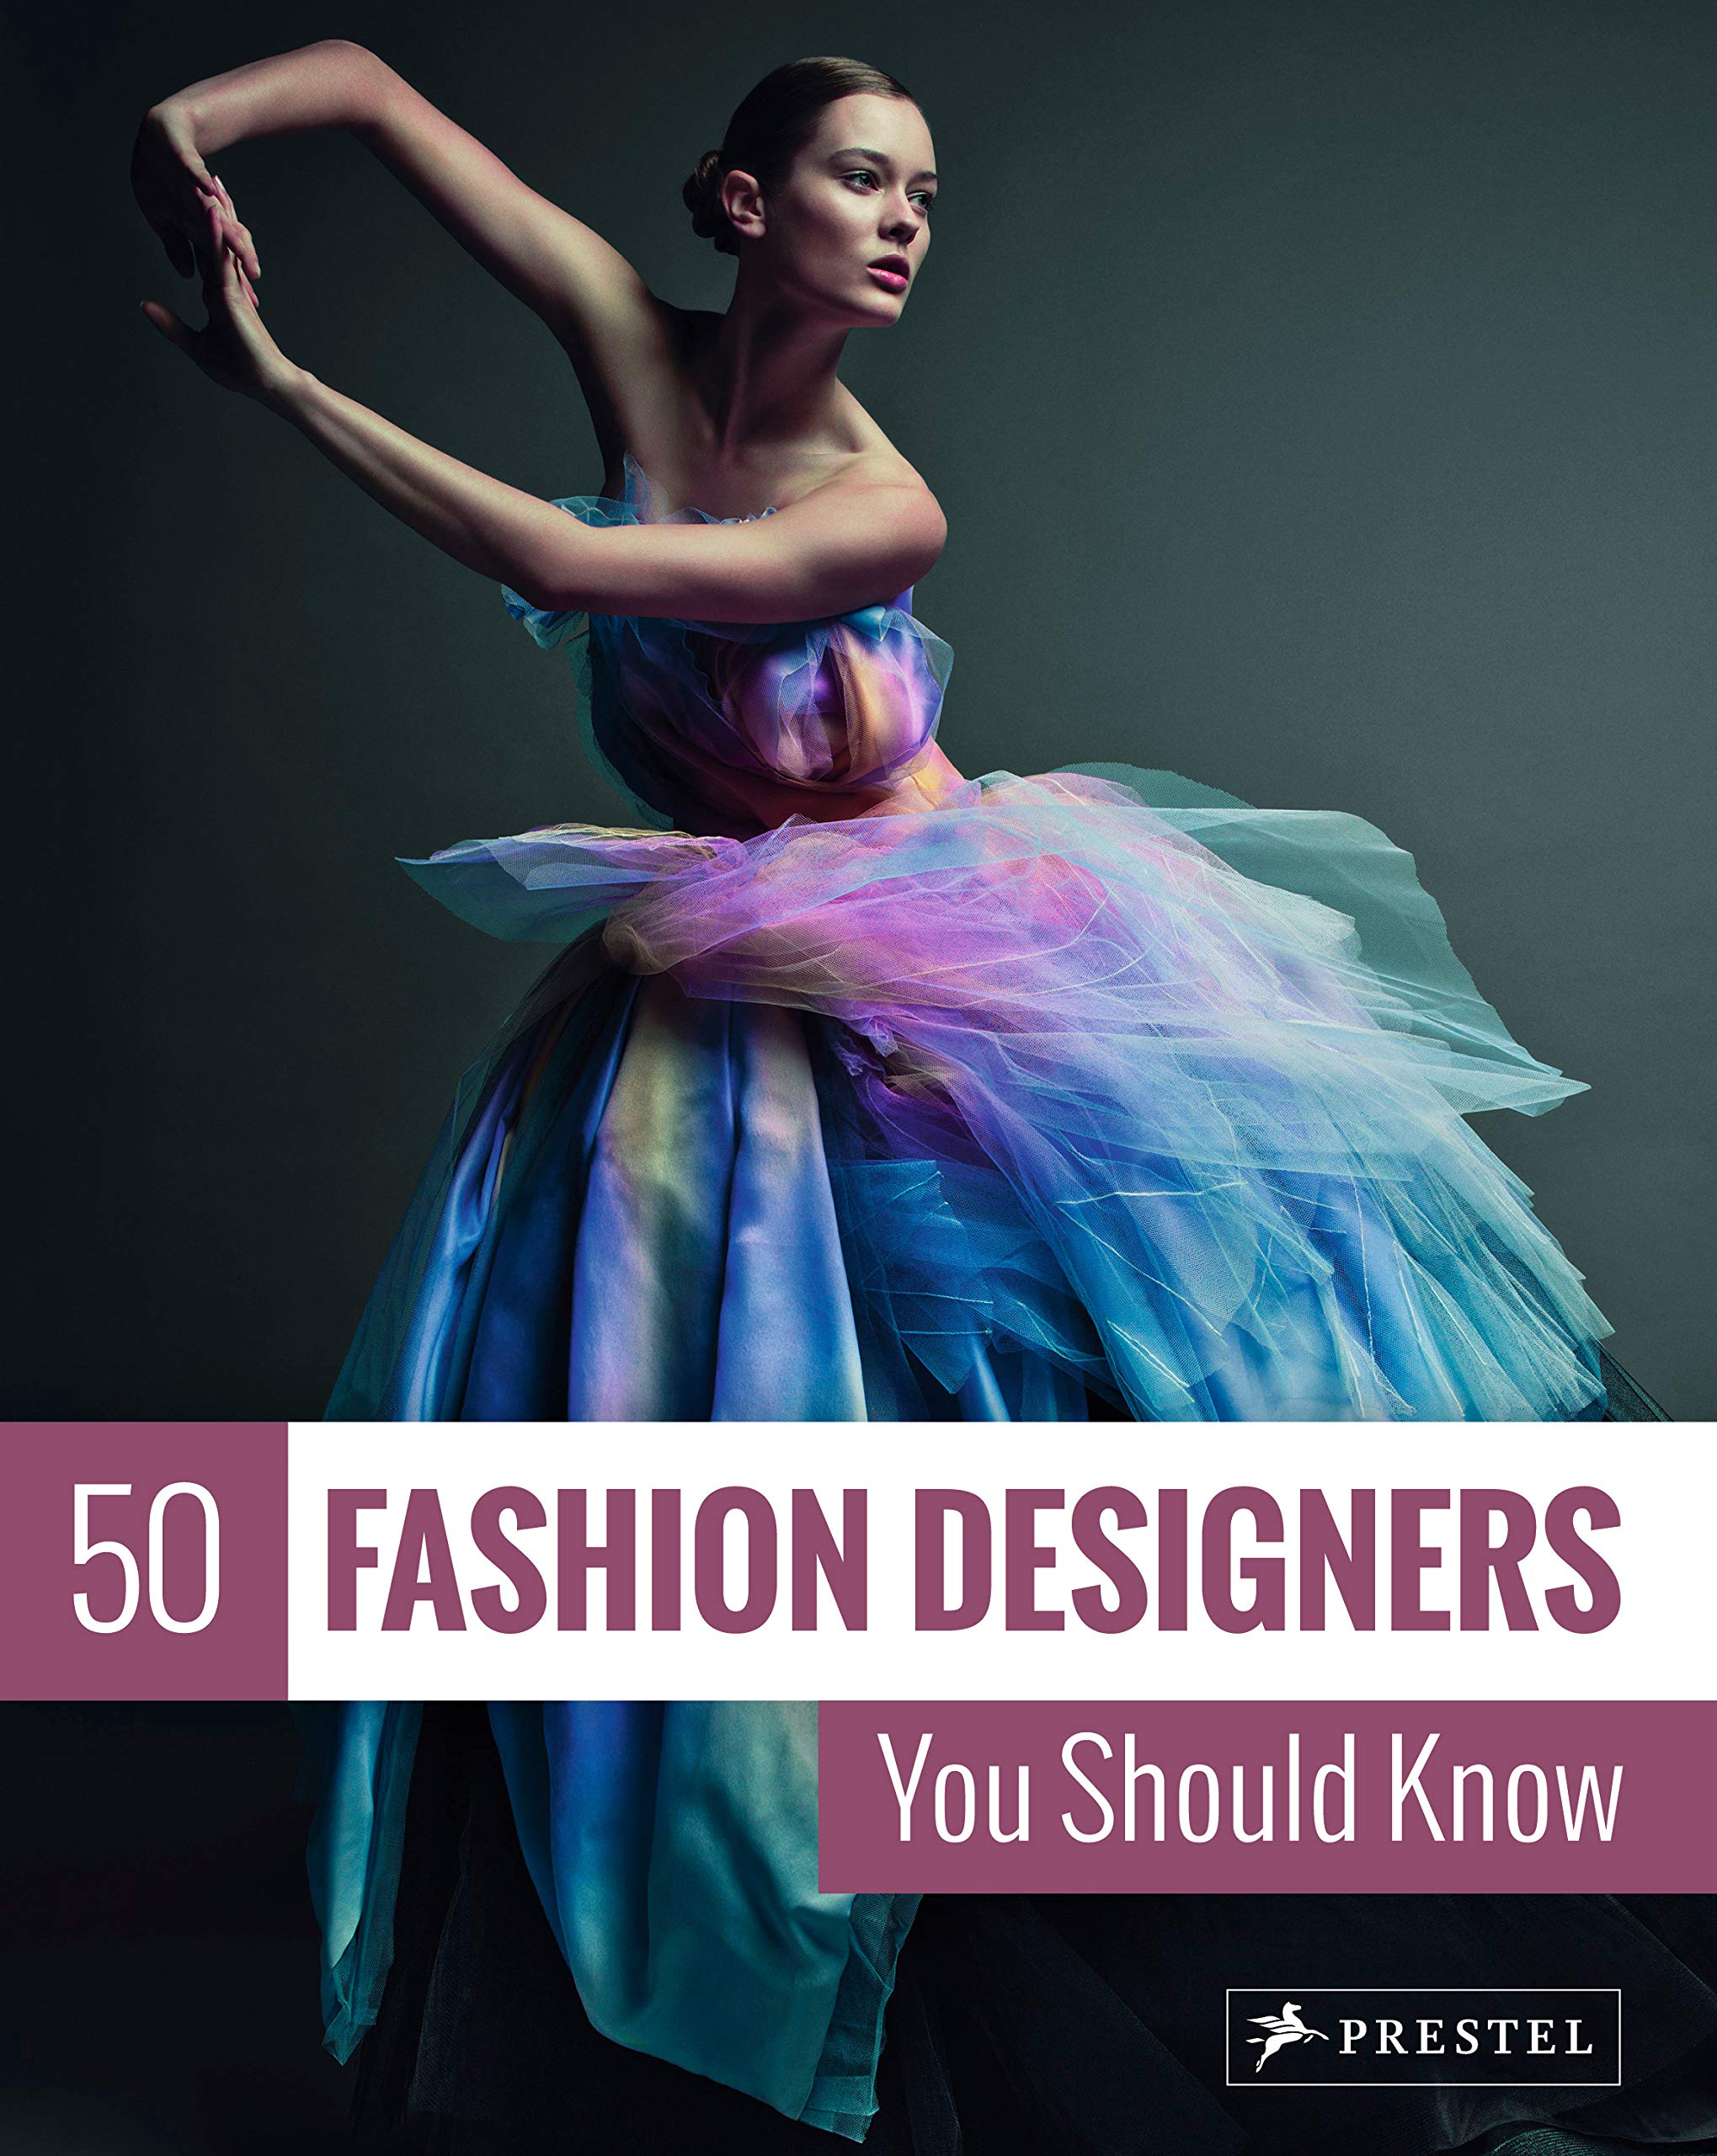 """50 Fashion Designers You Should Know (50 You Should Know)"" reune a medio centenar de diseñadores muy populares en la industria del diseño y presenta lo mejor de su trabajo. (Suministrada)"